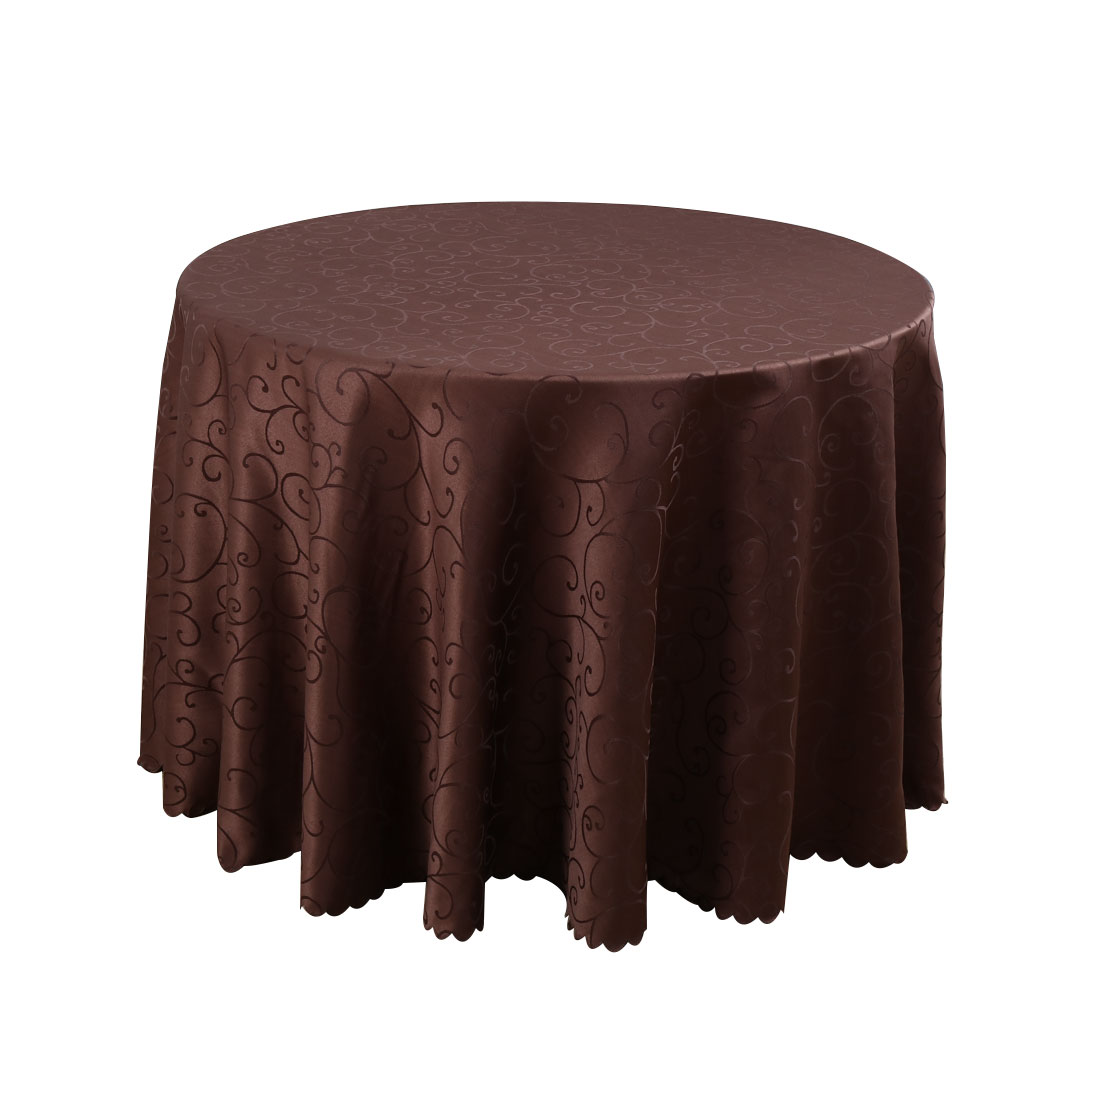 "Hotel Restaurant Polyester Round Flower Pattern Tablecloth Table Cloth Cover Coffee Color Water/Oil Stain Resistant 94"" Dia"